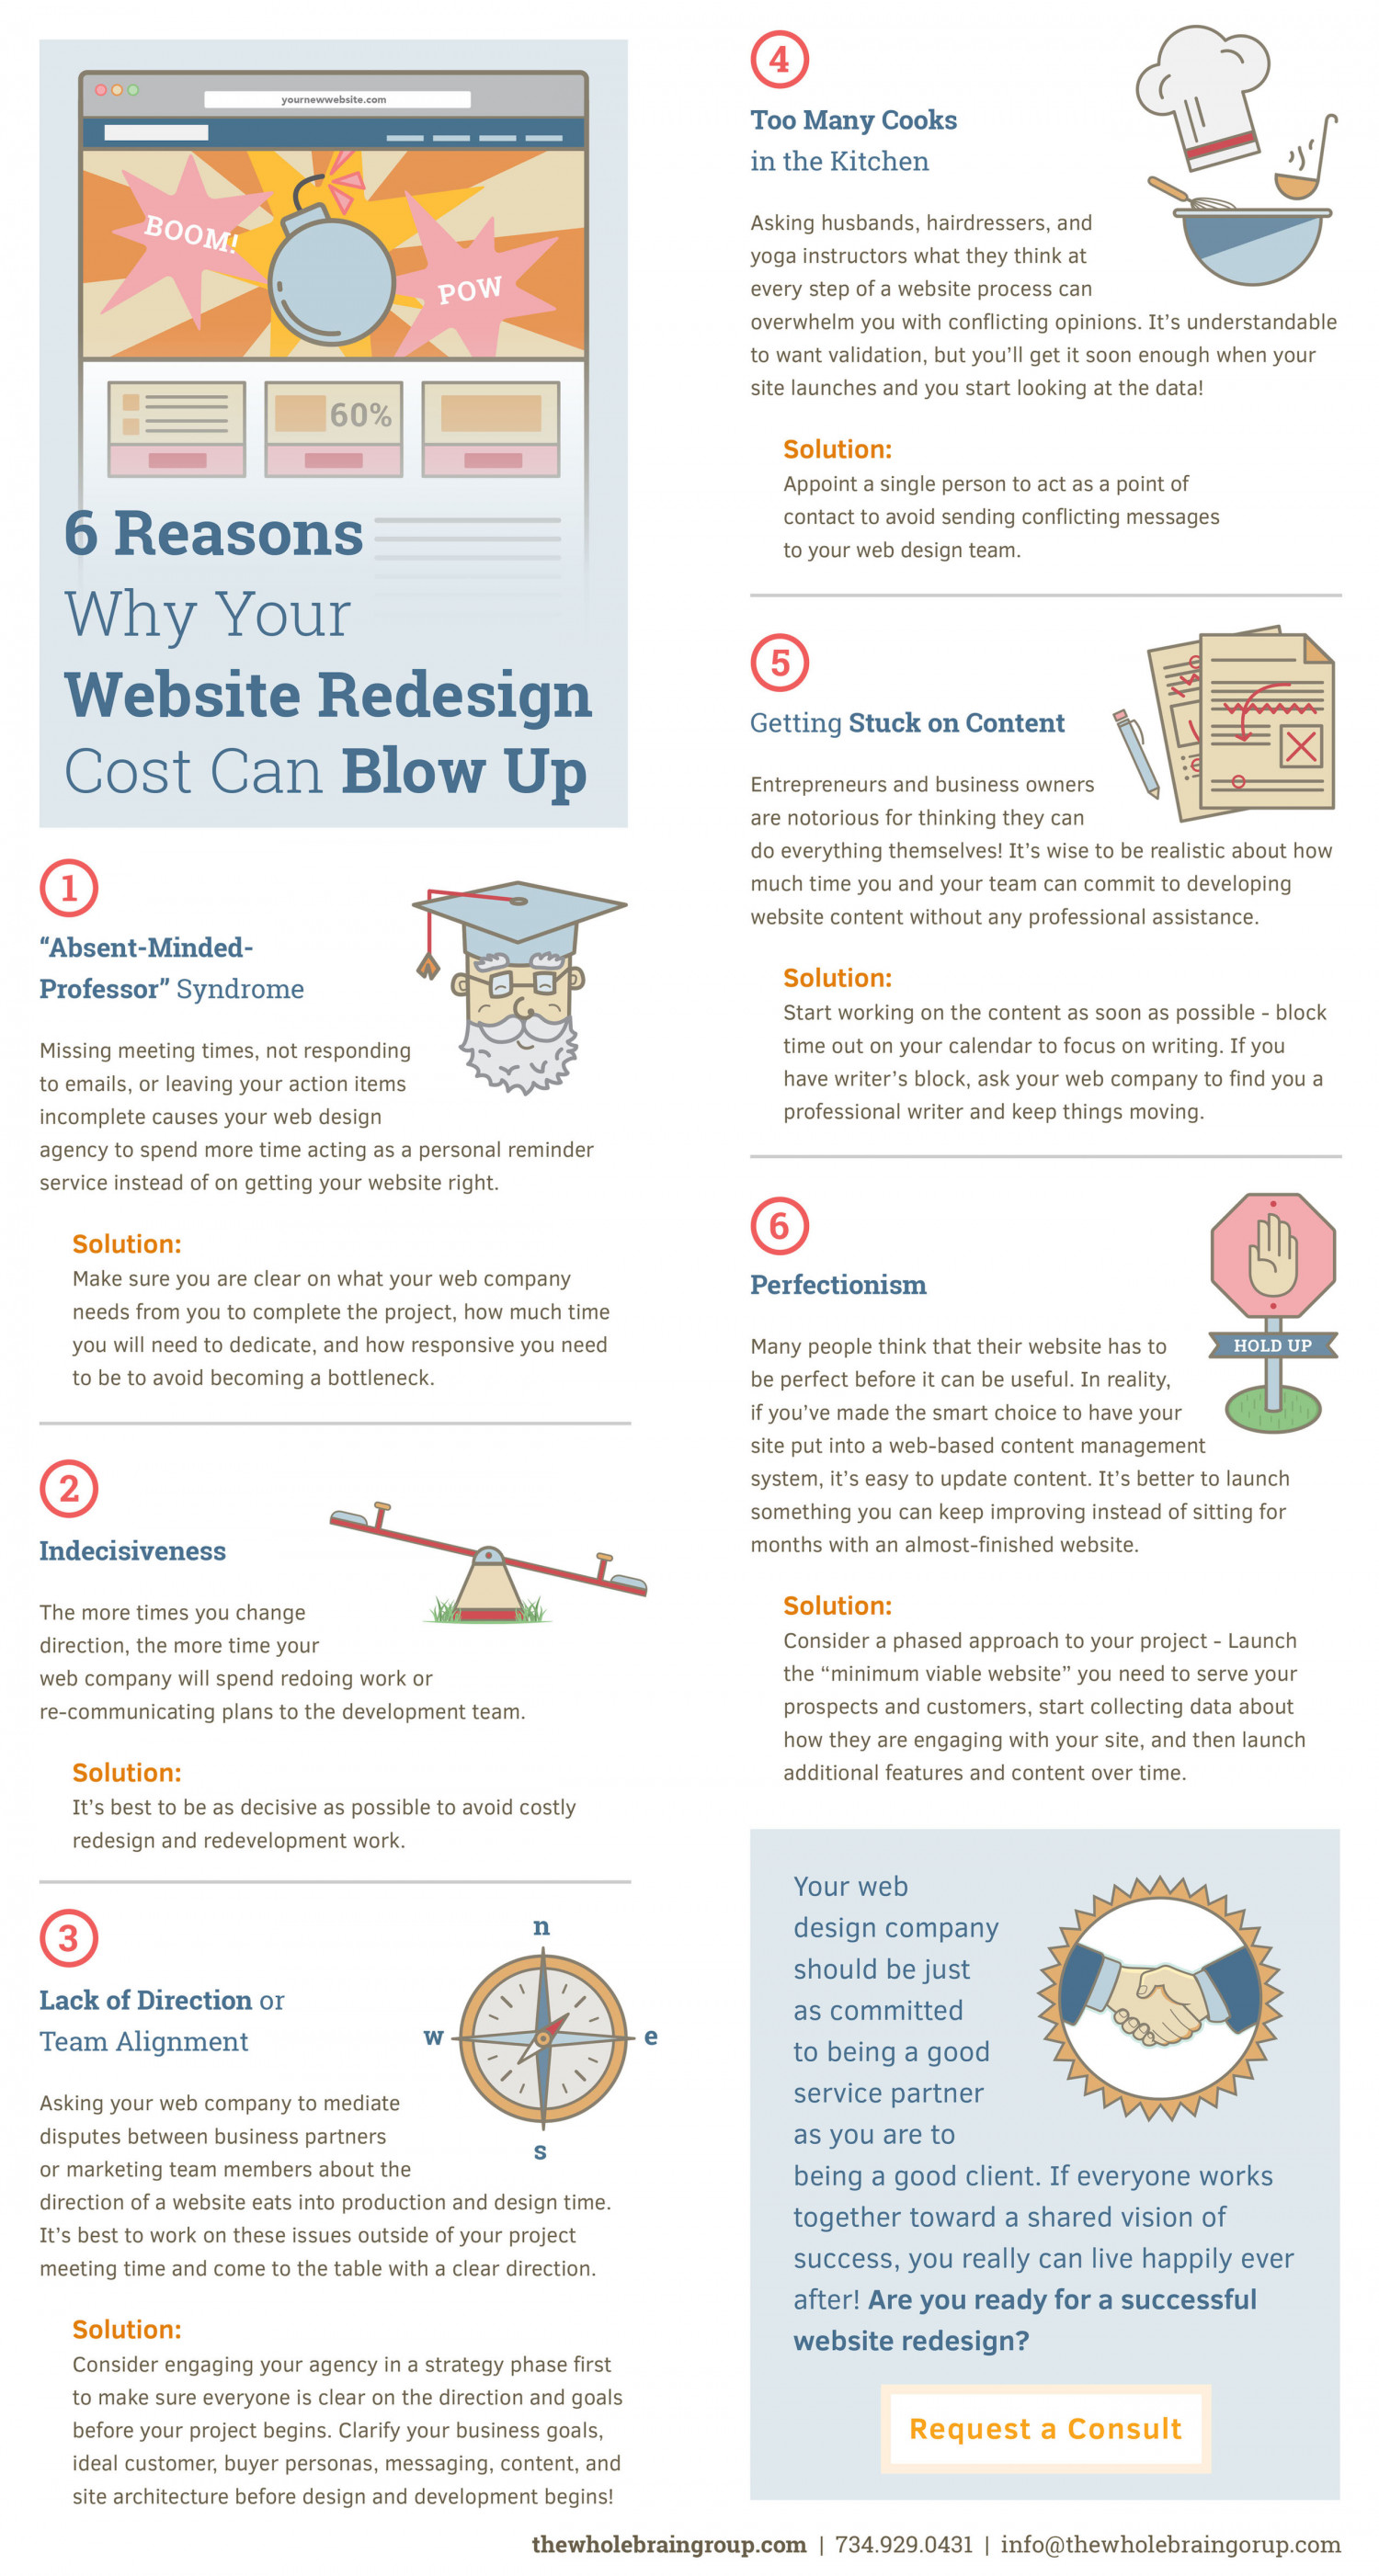 6 REASONS YOUR WEBSITE REDESIGN COST CAN BLOW UP Infographic